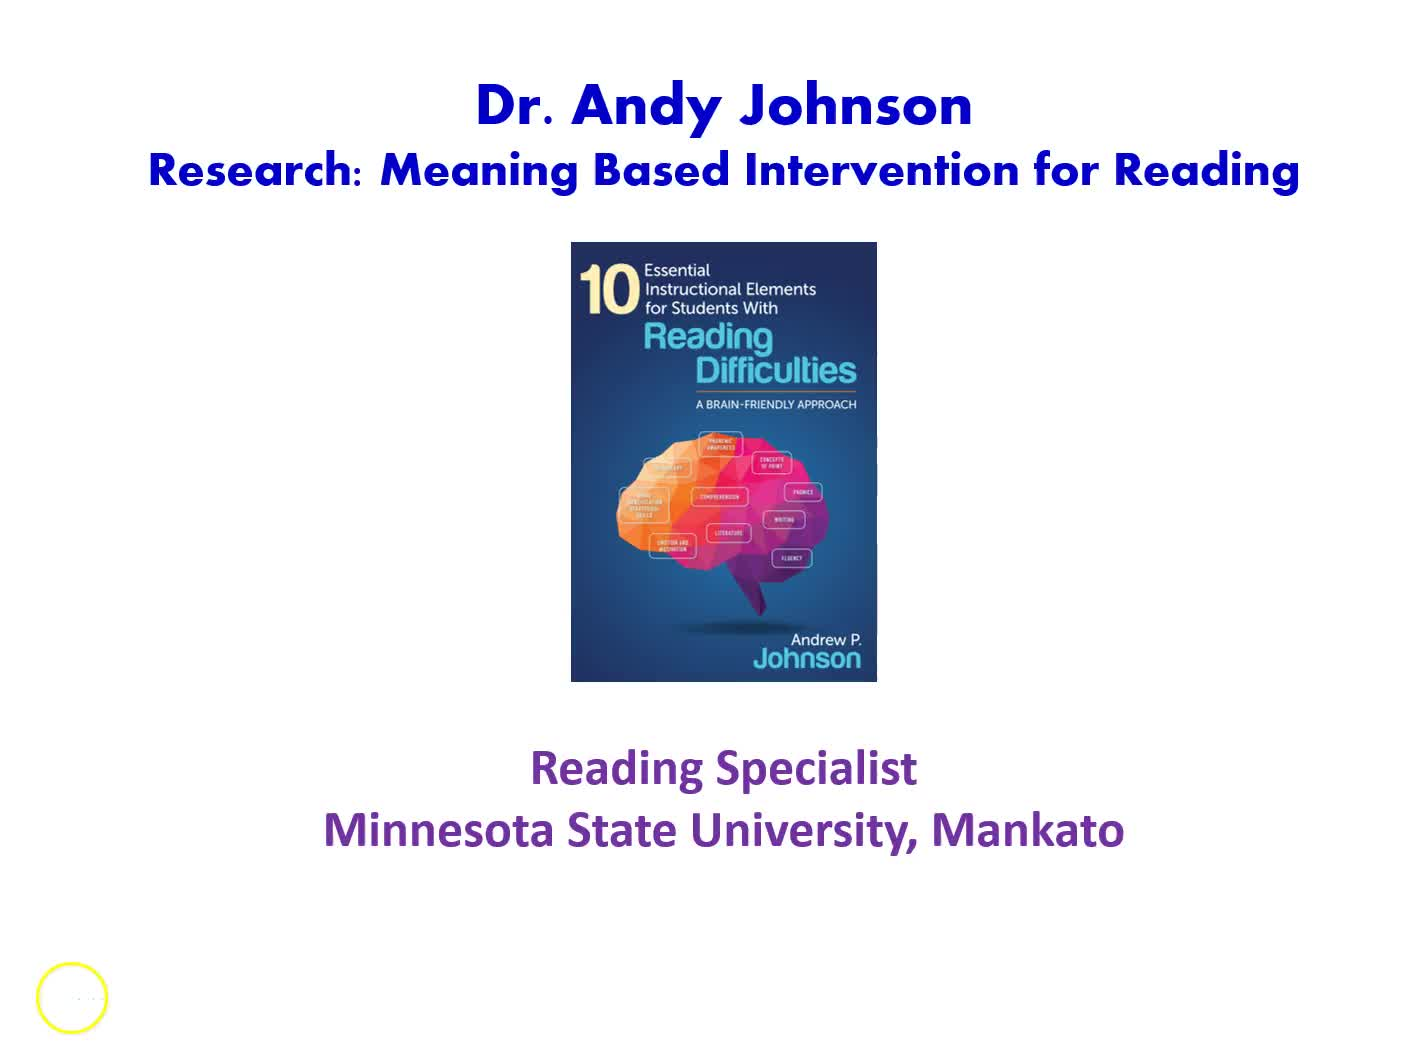 Research Project: Meaning-Based Intervention For Reading